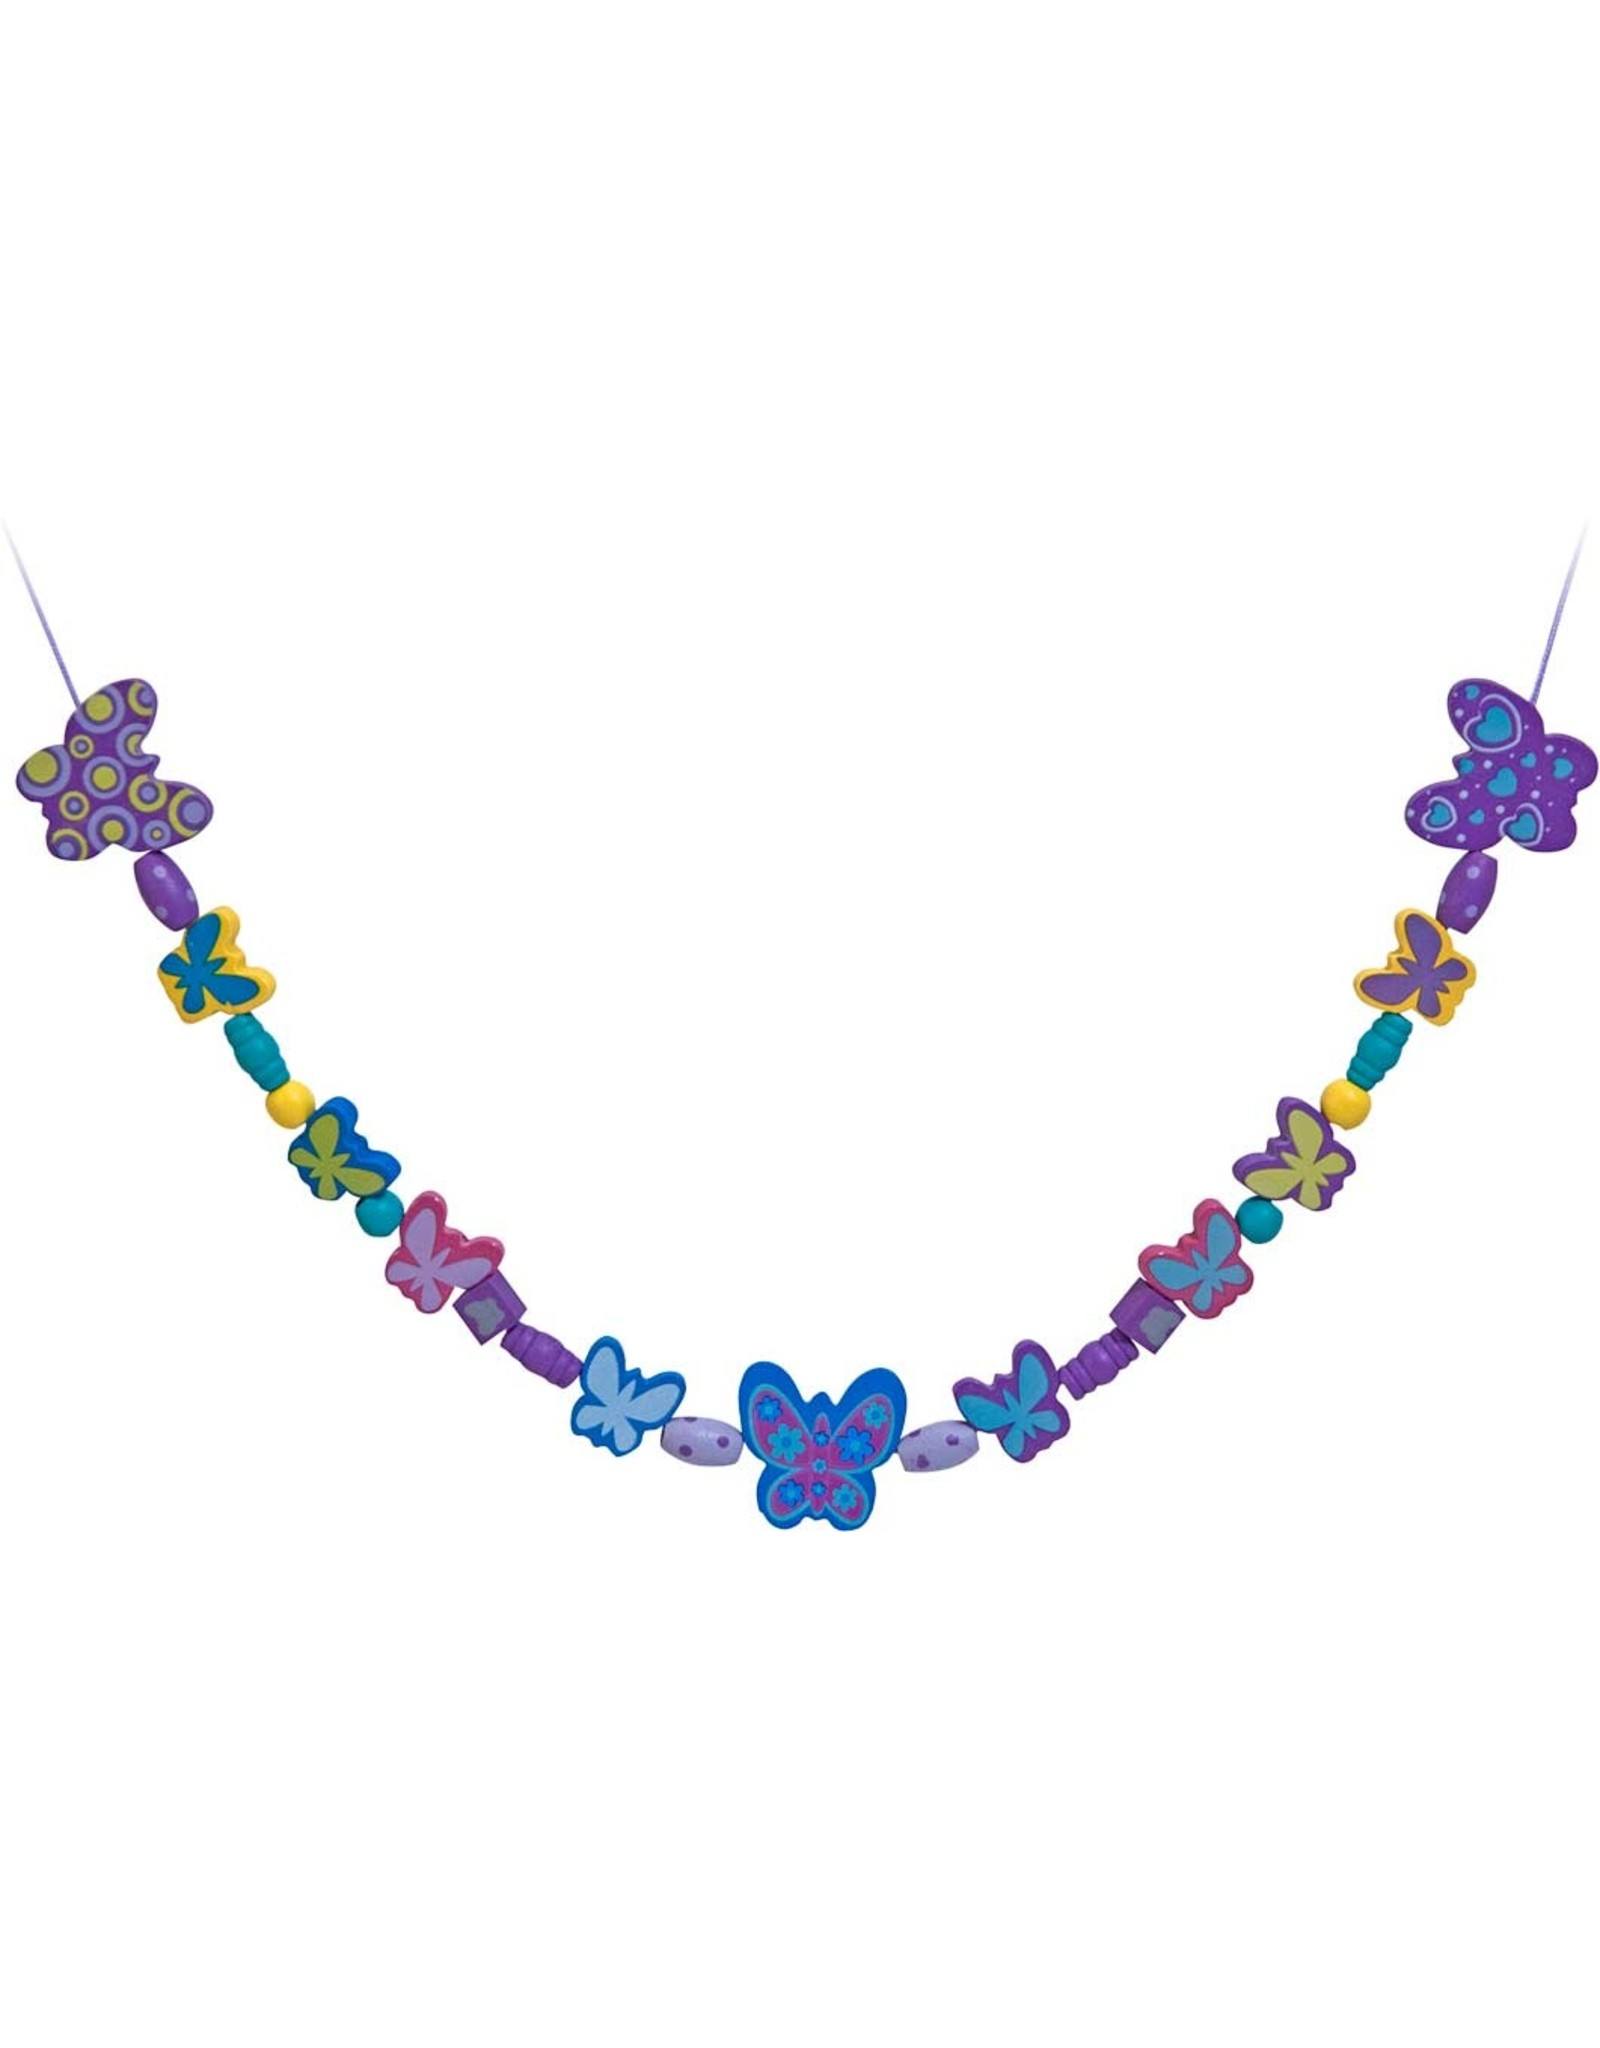 MELISSA & DOUG BUTTERFLY BEADS